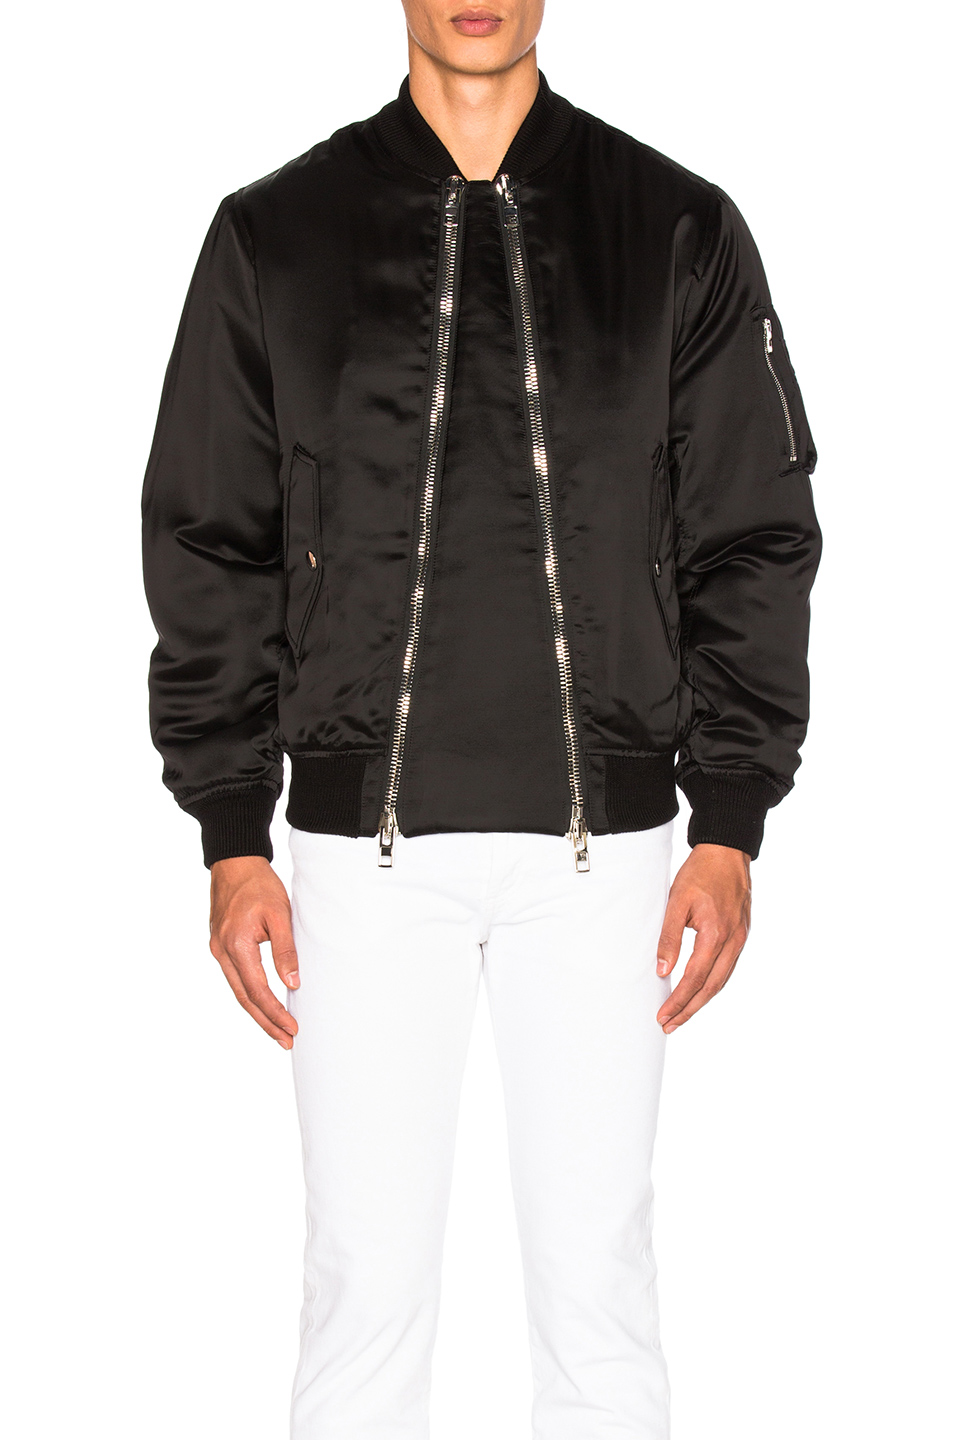 Givenchy Viscose Silk Bomber Jacket in Black